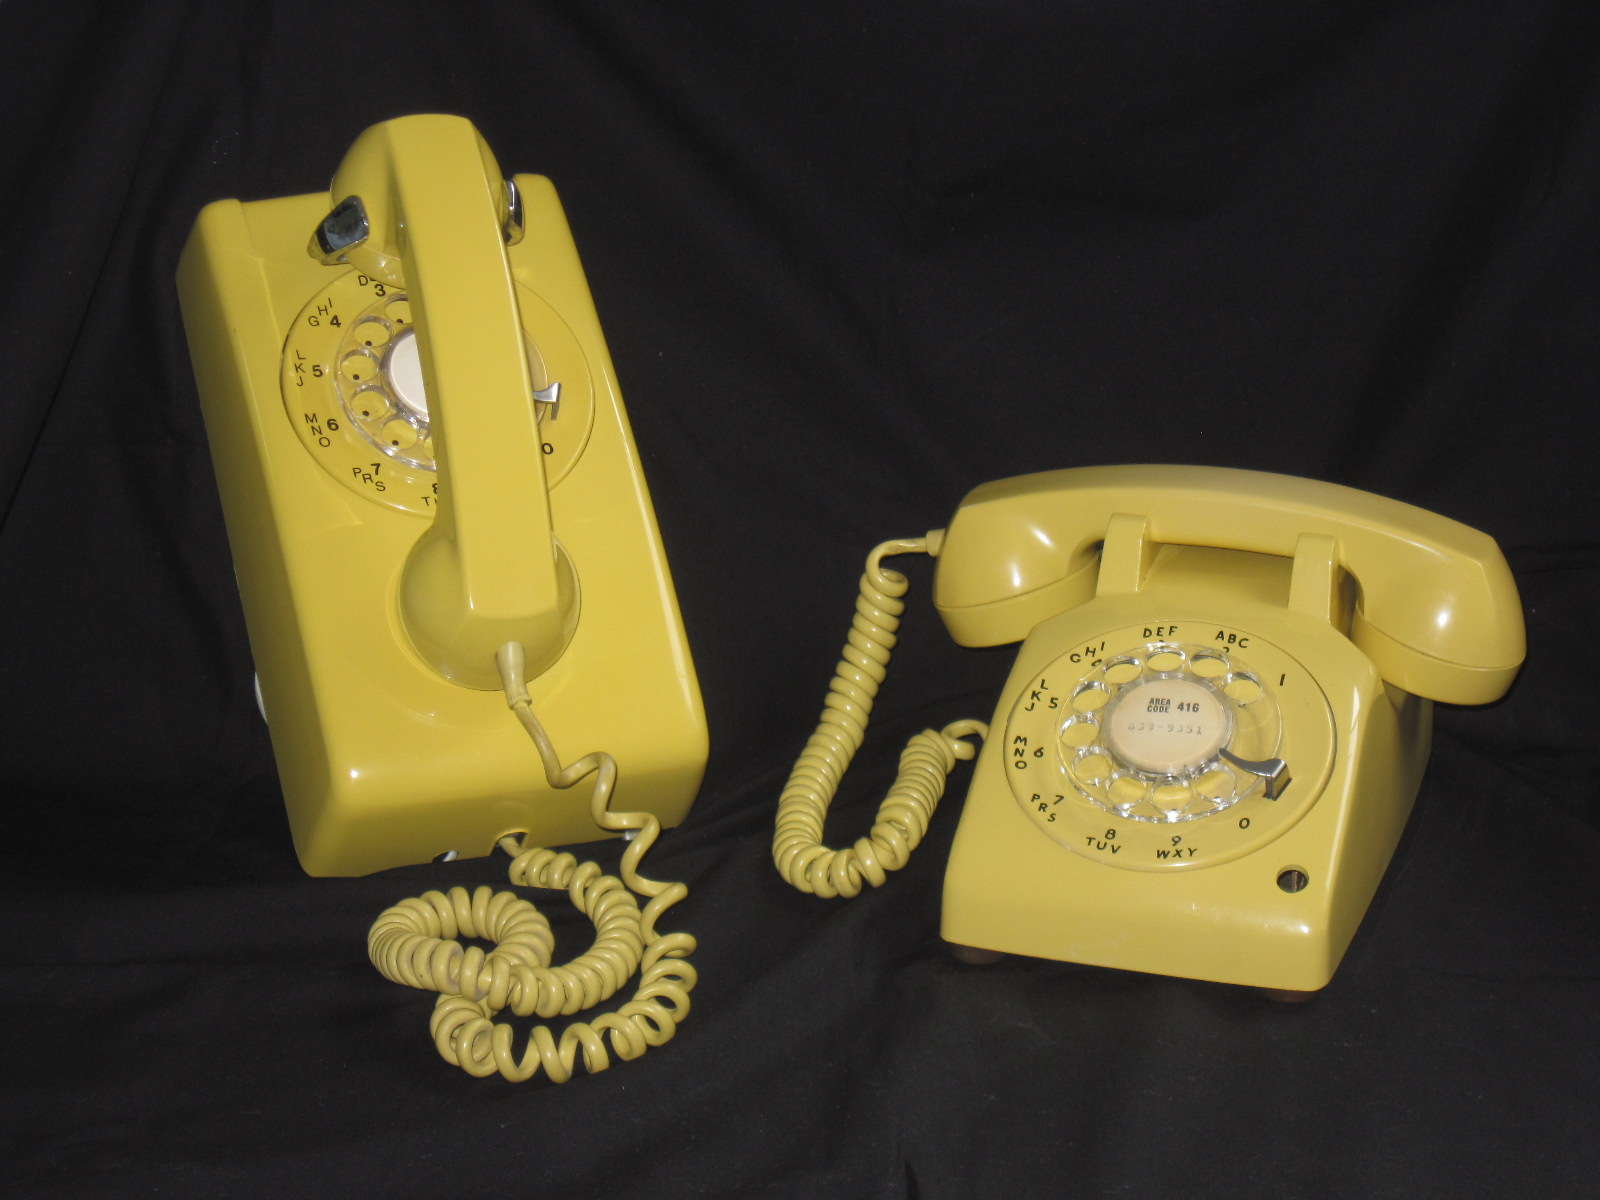 Vintage 1970's and 80's Yellow Rotary Dial Phones | fabfindsblog